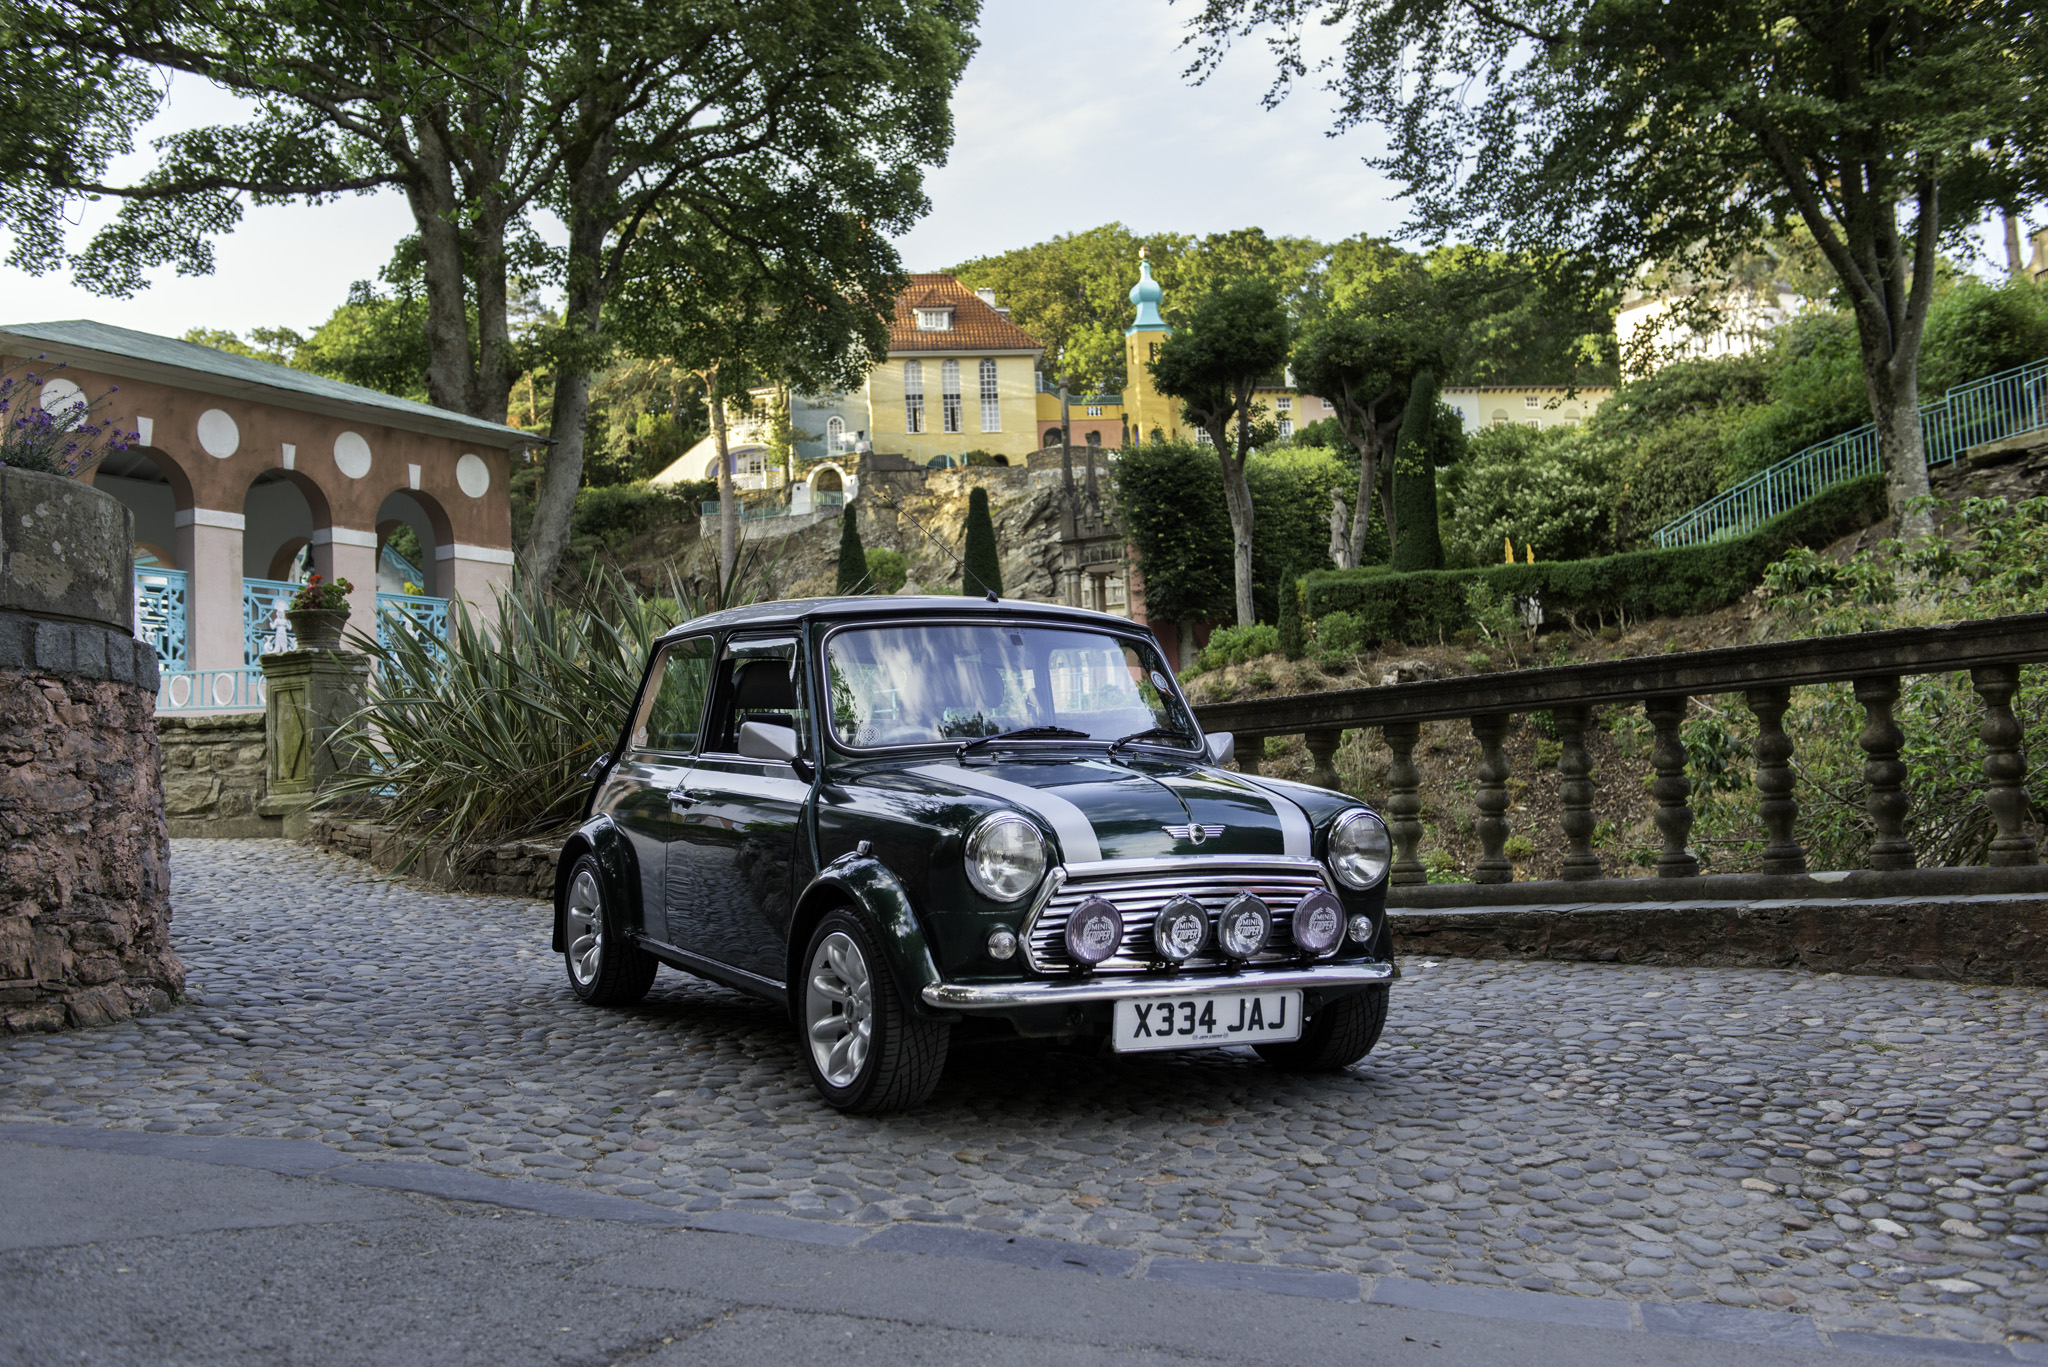 2000 ROVER MINI COOPER SPORT  |  OWNER - GER ROBERTS  |  LOCATION - PORTMEIRION